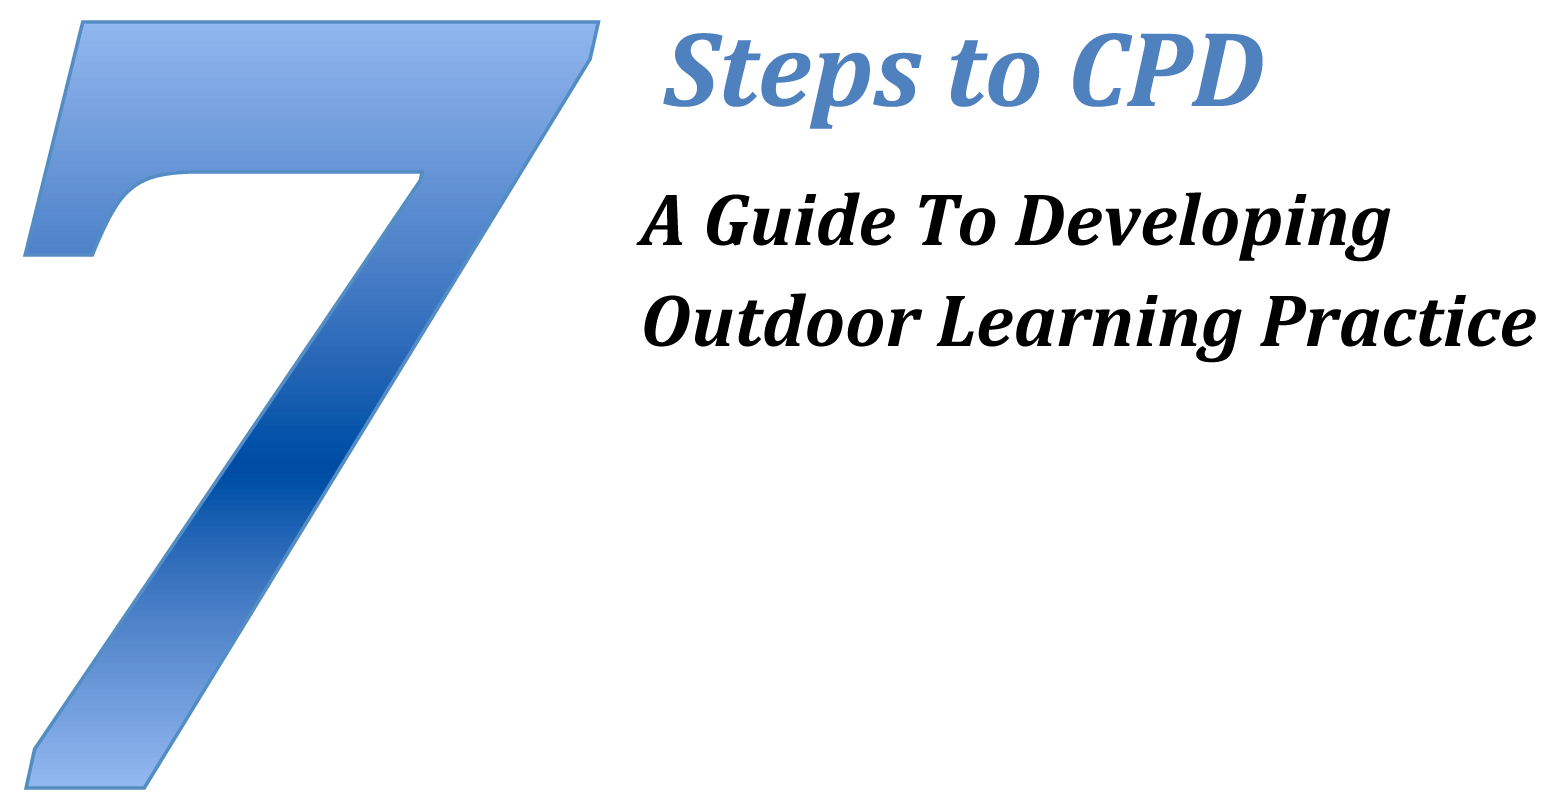 7 Steps to CPD